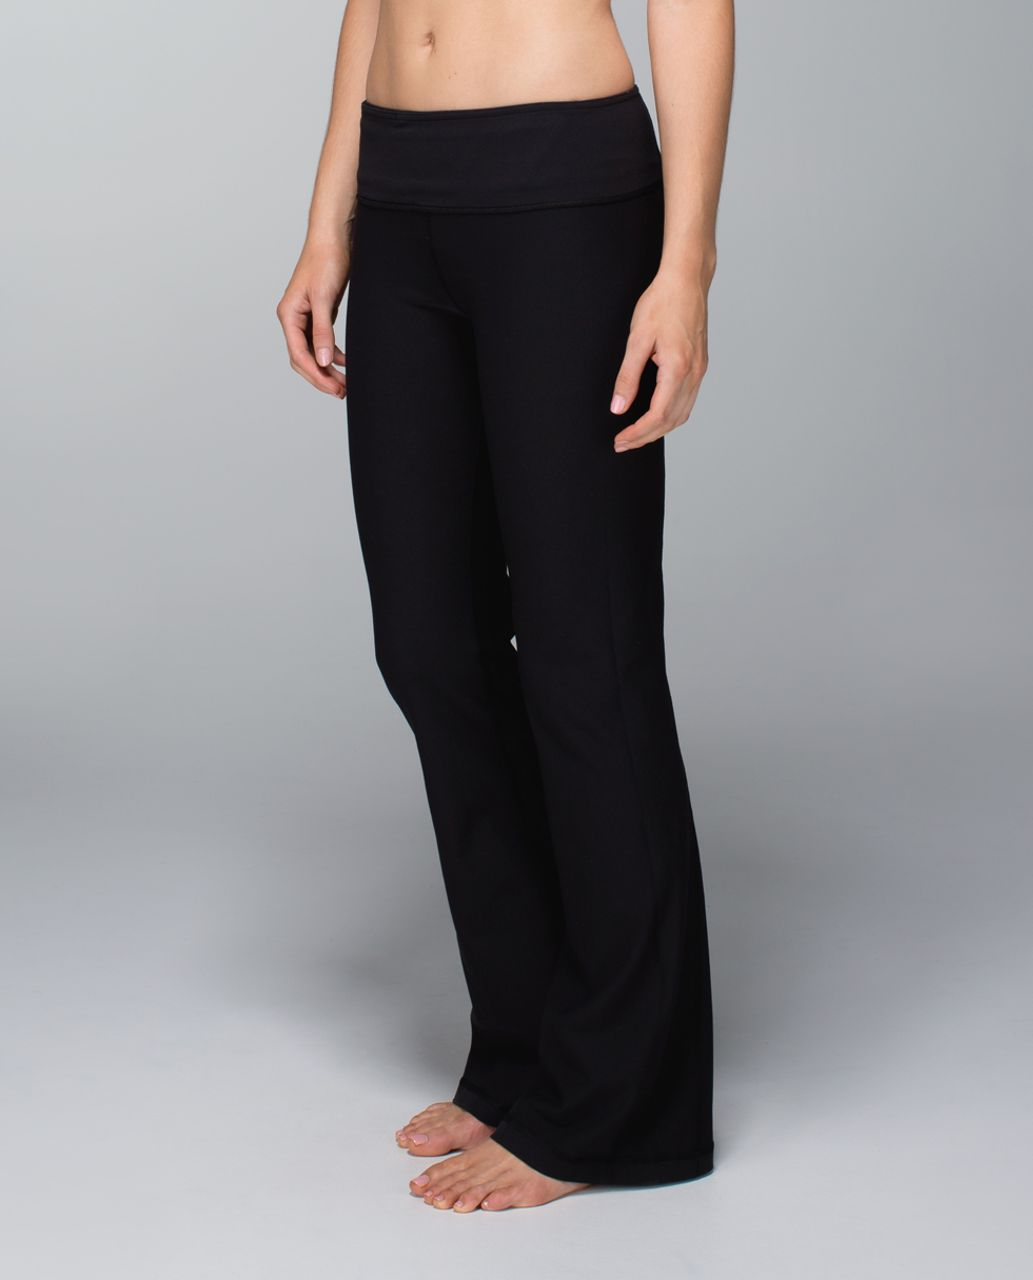 Lululemon Groove Pant (Regular) *Full-On Luon - Black / Quilt Winter 13-12